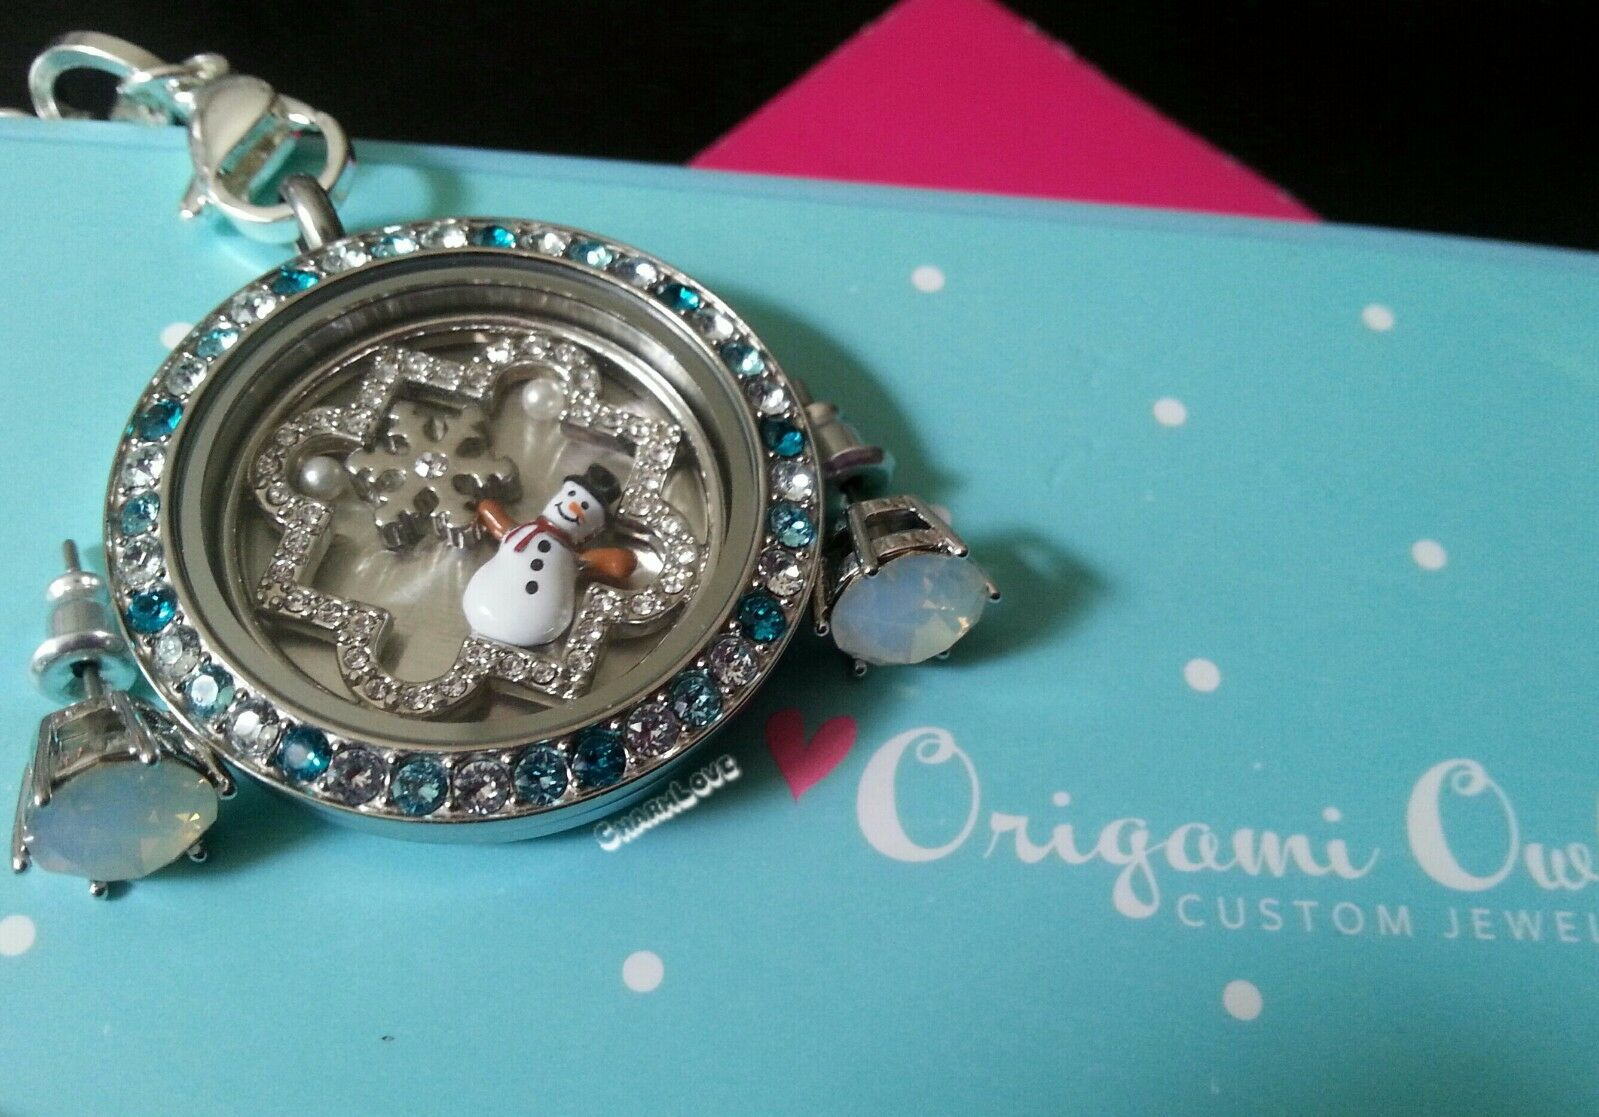 ORIGAMI Owl Christmas Wonderland Set  tri colord face, snowman & More